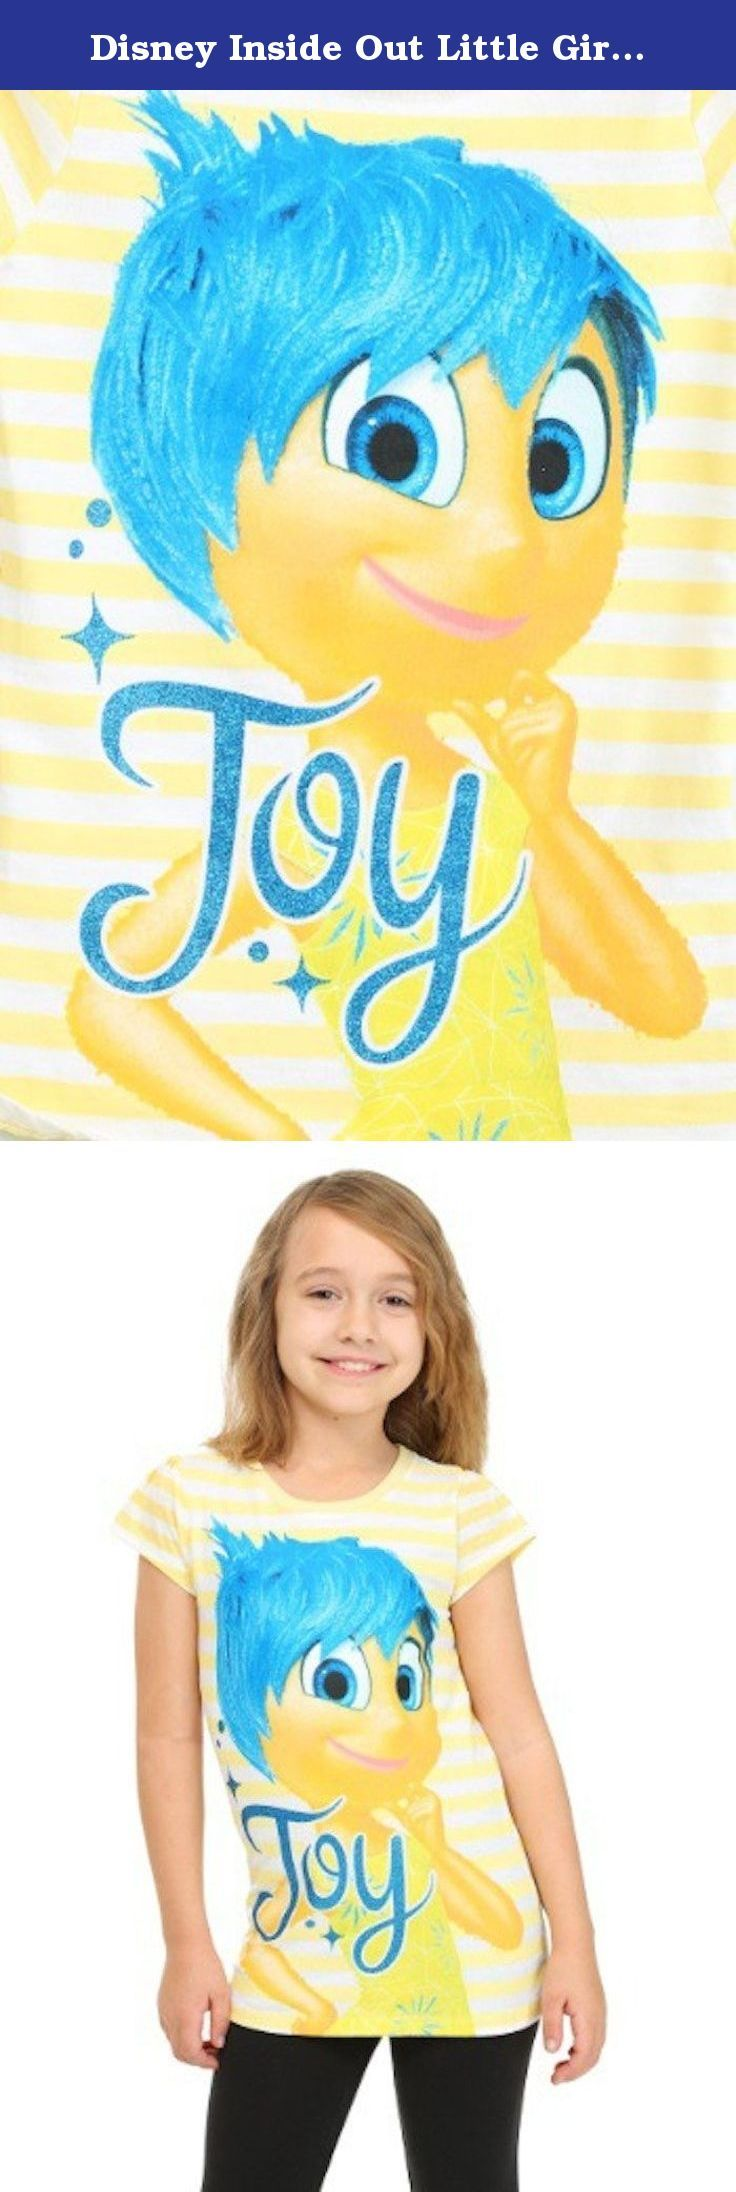 Disney Inside Out Little Girls YELLOW STRIPE Joy Stripe T-Shirt (6, YELLOW STRIPE ). Disney Pixar Short Sleeve 'Inside Out' Tee Girls 6-6x INSIDE OUT YELLOW STRIPE JOY GIRLS T-SHIRT Size: 6 ~6X Days when your kid wears this Inside Out Yellow Stripe Joy Girls T-Shirt are happy days! With a playful yellow color and the Disney Pixar character on the front, it's really hard to feel down while wearing it. Any young fan of the movie will be ready to create some new islands of personality in no...